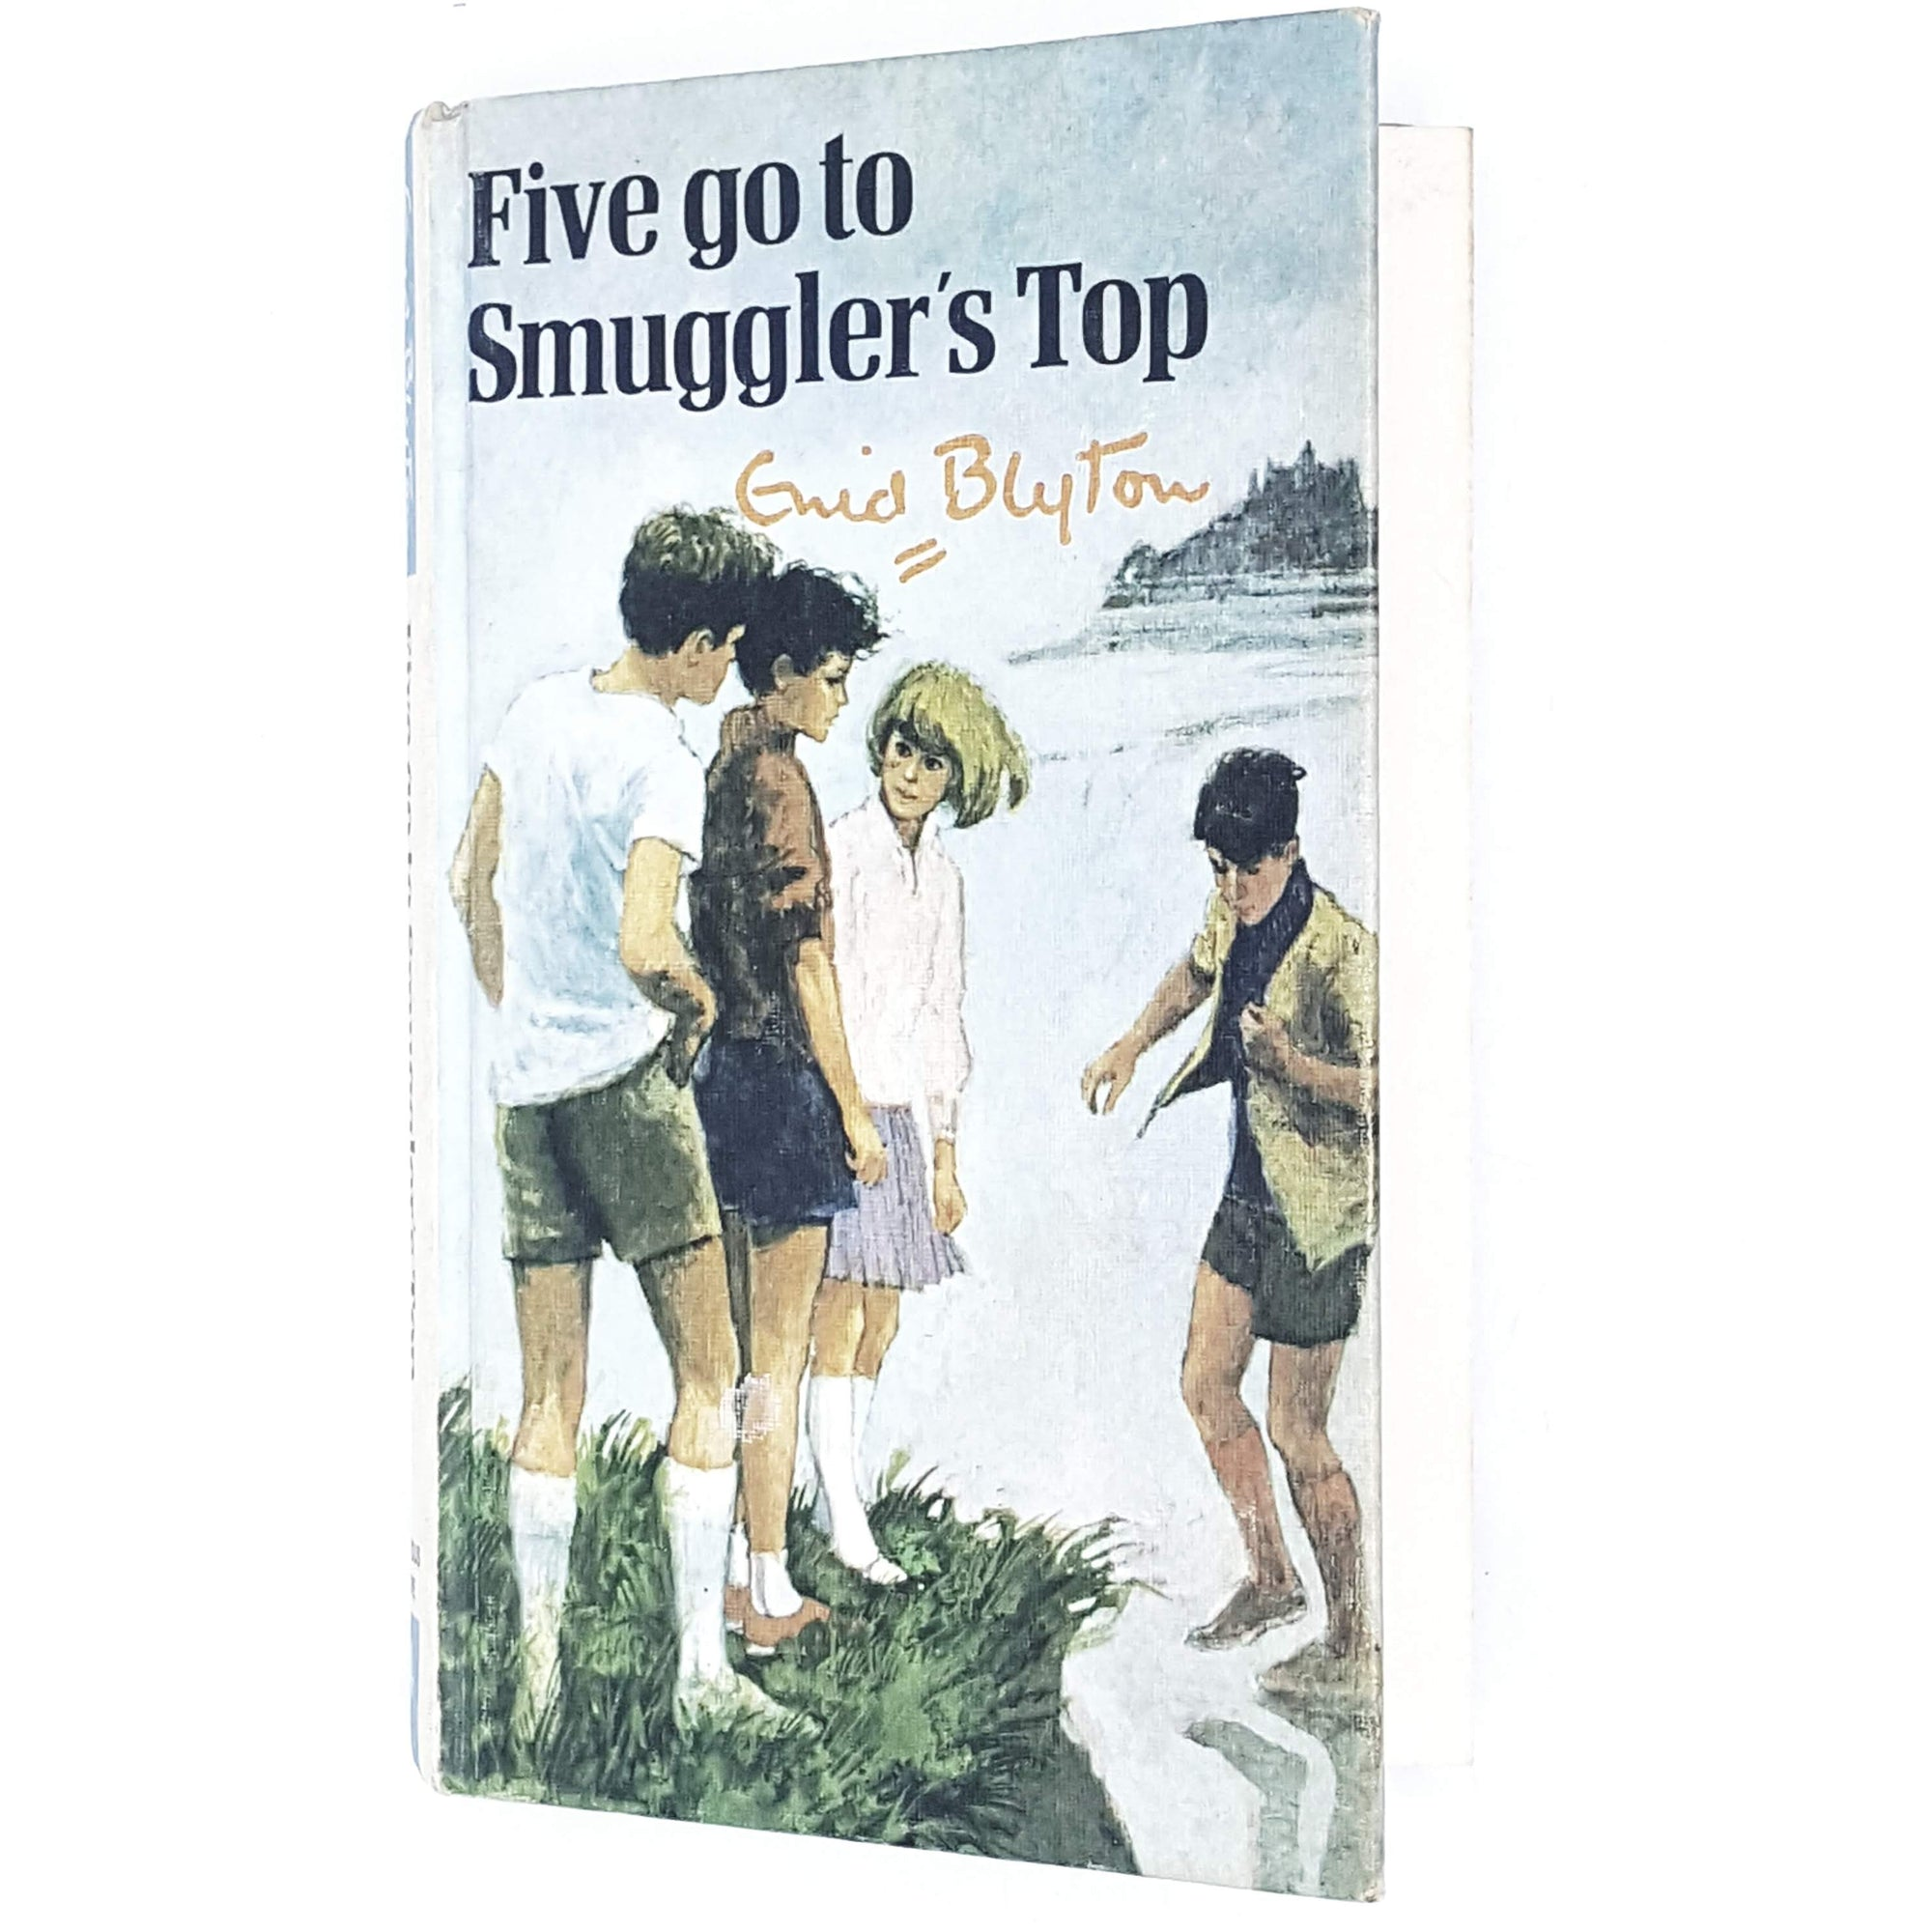 Enid Blyton's Five Go To Smuggler's Top 1974